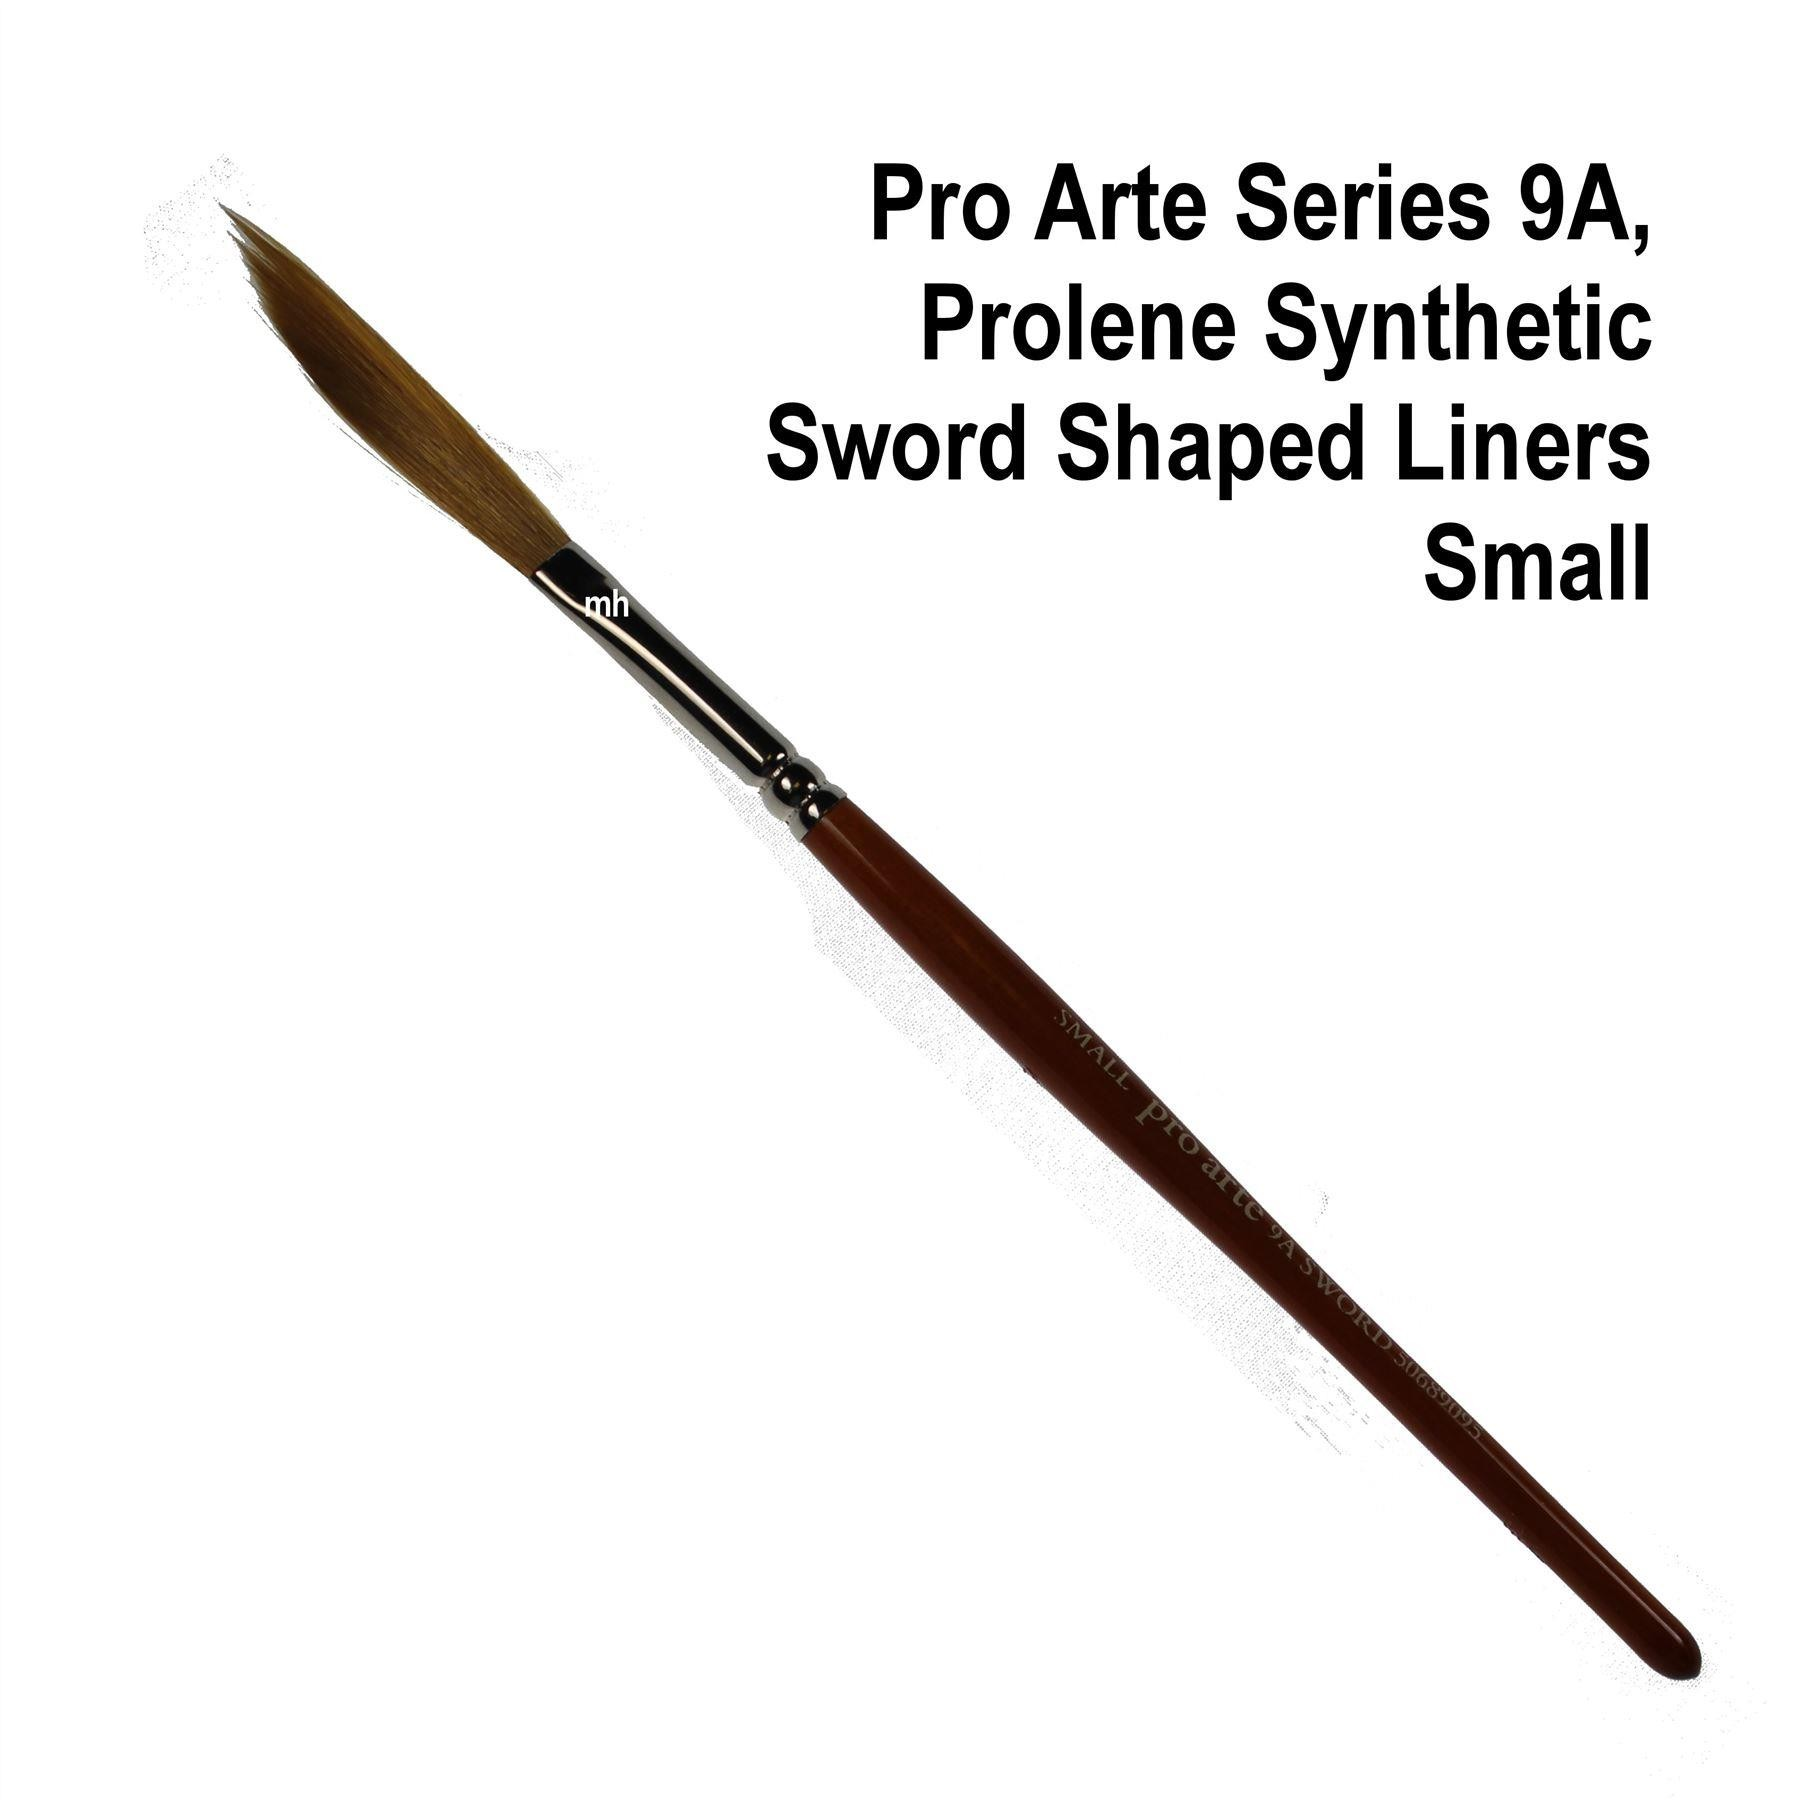 Pro Arte 9A Prolene Synthetic Sword Shaped Liners brush